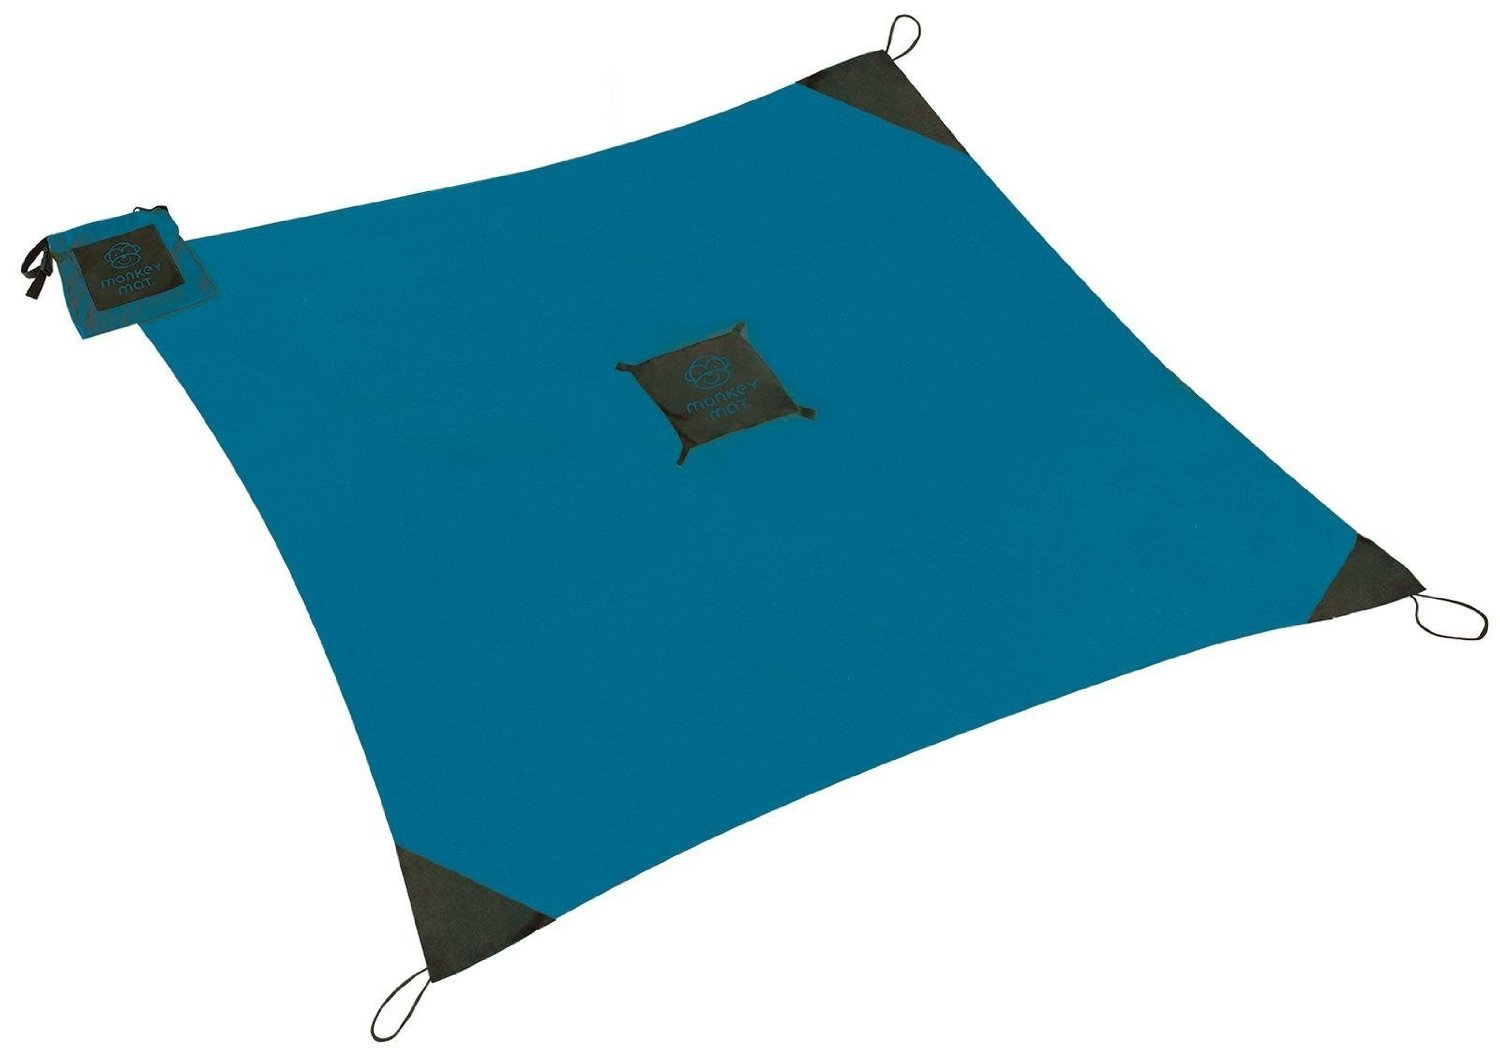 MONKEY MAT Portable Lightweight Indoor/Outdoor 5'x5' Water/Sand Repellent Blanket with Corner Weights & Loops in Compact Pouch (Blue Yonder)